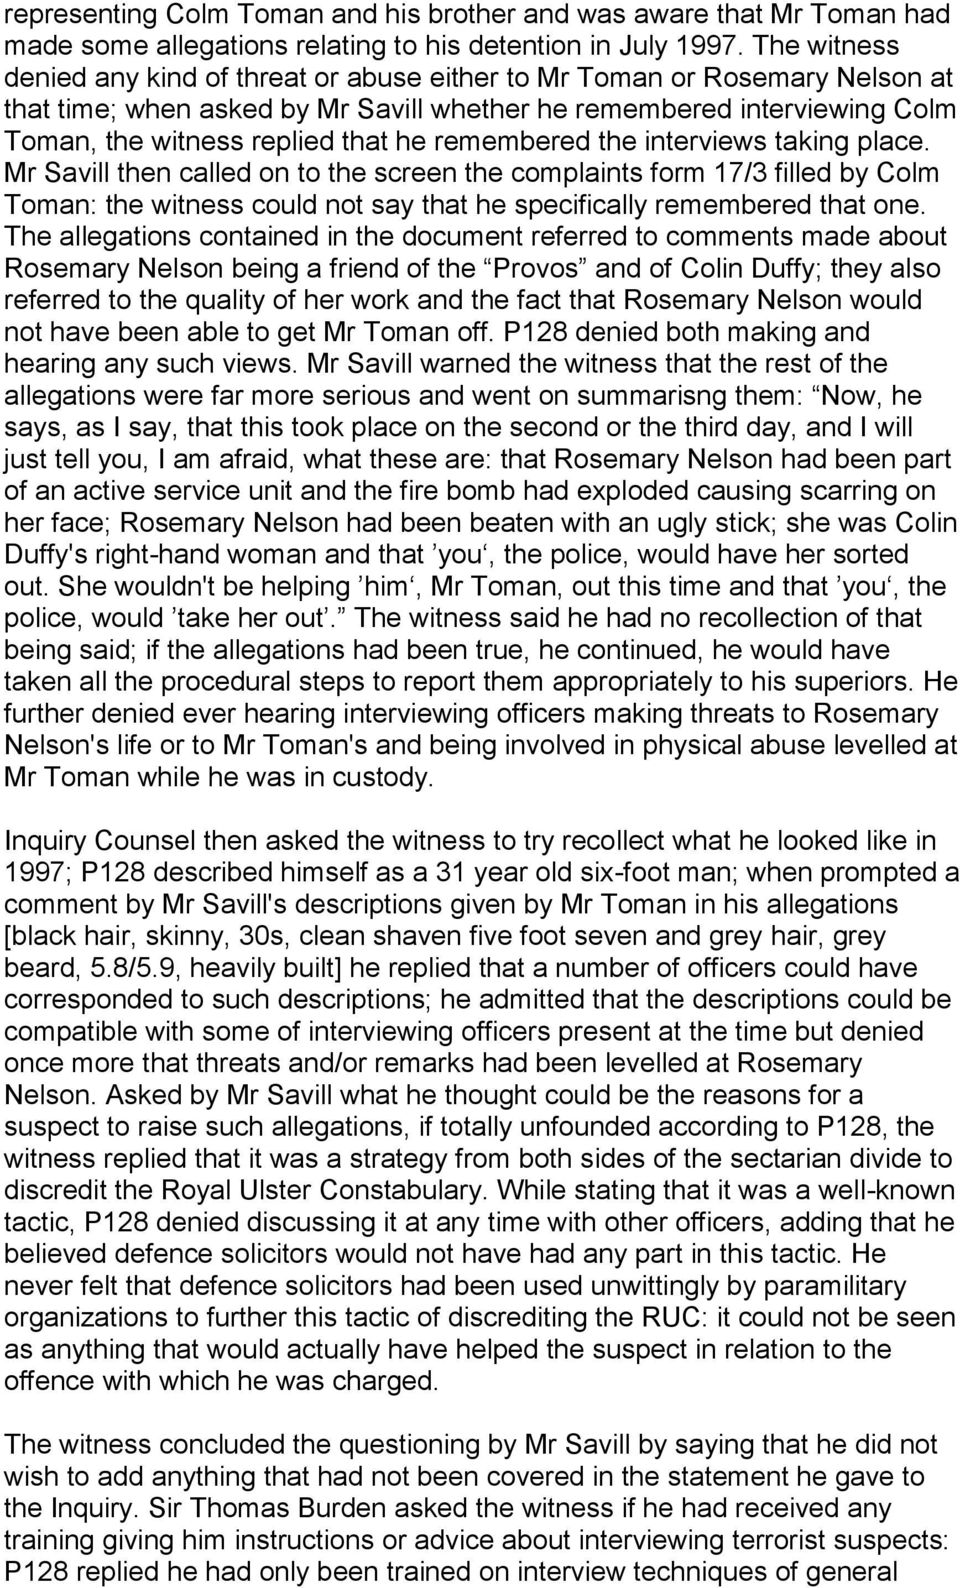 remembered the interviews taking place. Mr Savill then called on to the screen the complaints form 17/3 filled by Colm Toman: the witness could not say that he specifically remembered that one.